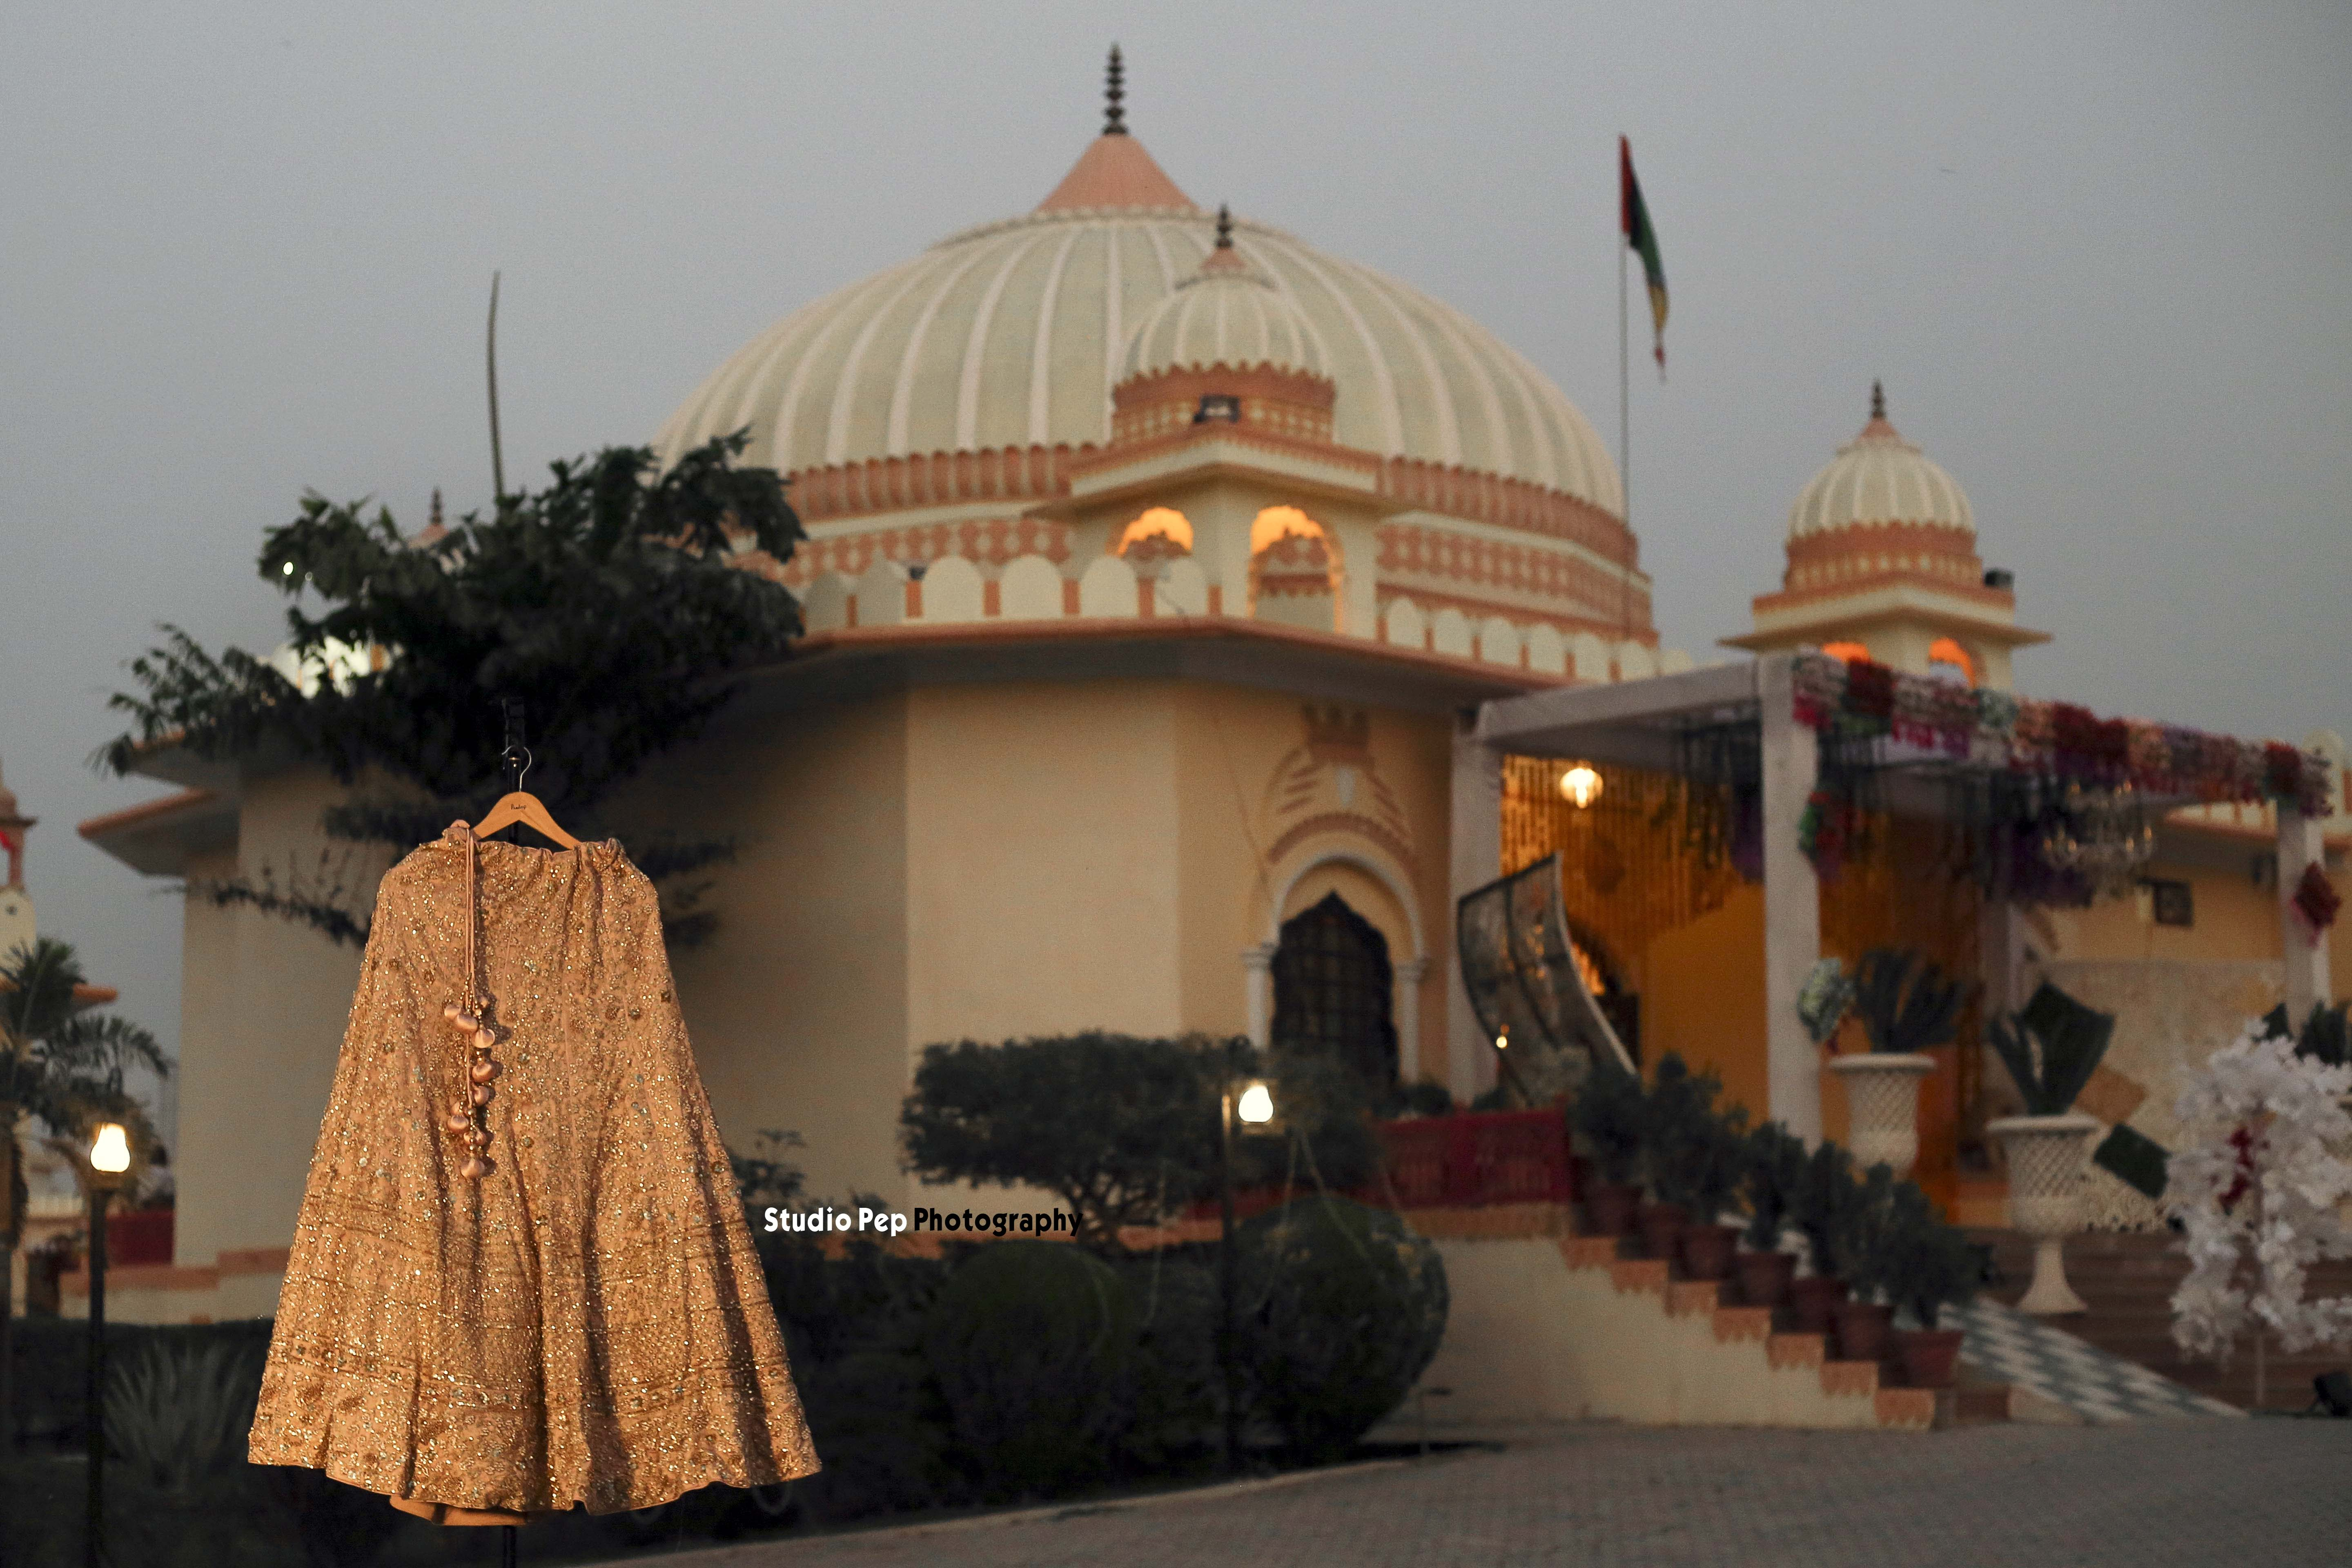 Palace for weddings - Bride and Groom